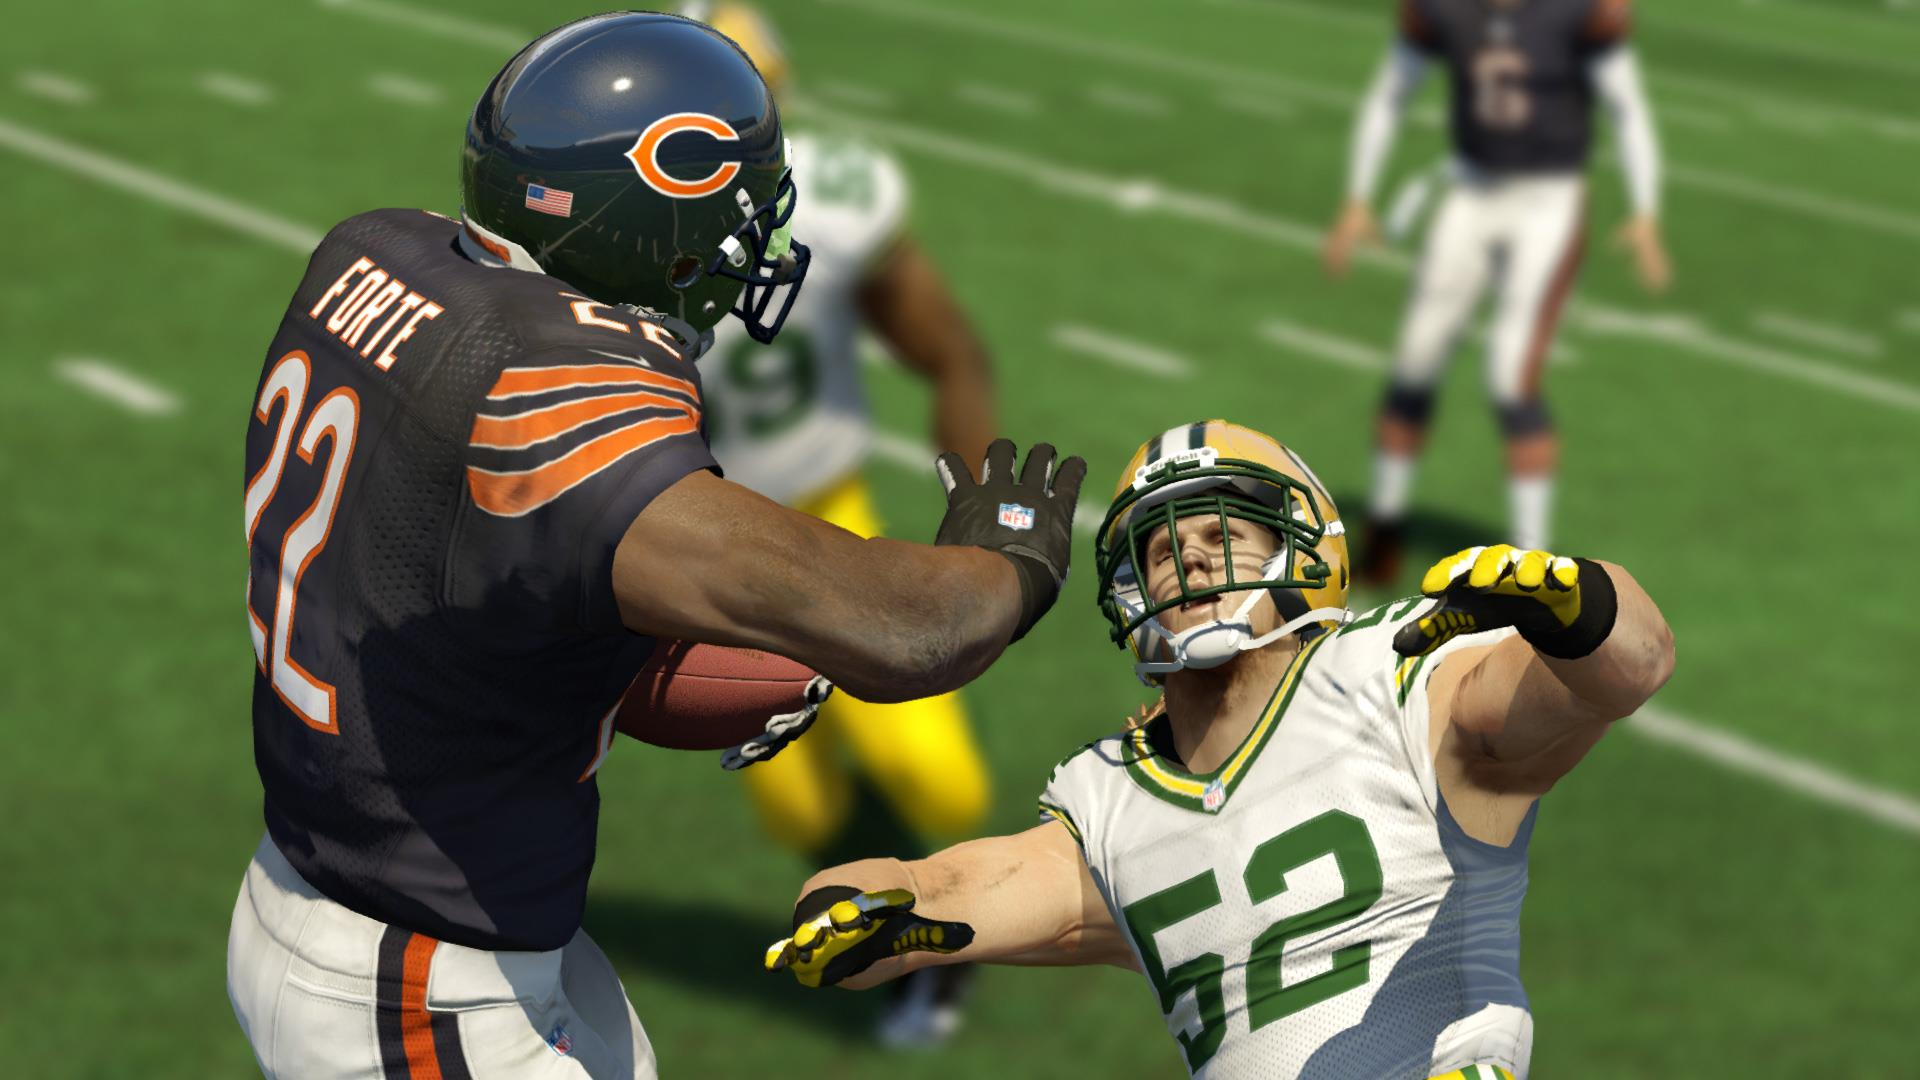 Matt Forte Legacy Award in Madden NFL 25 (Xbox One)